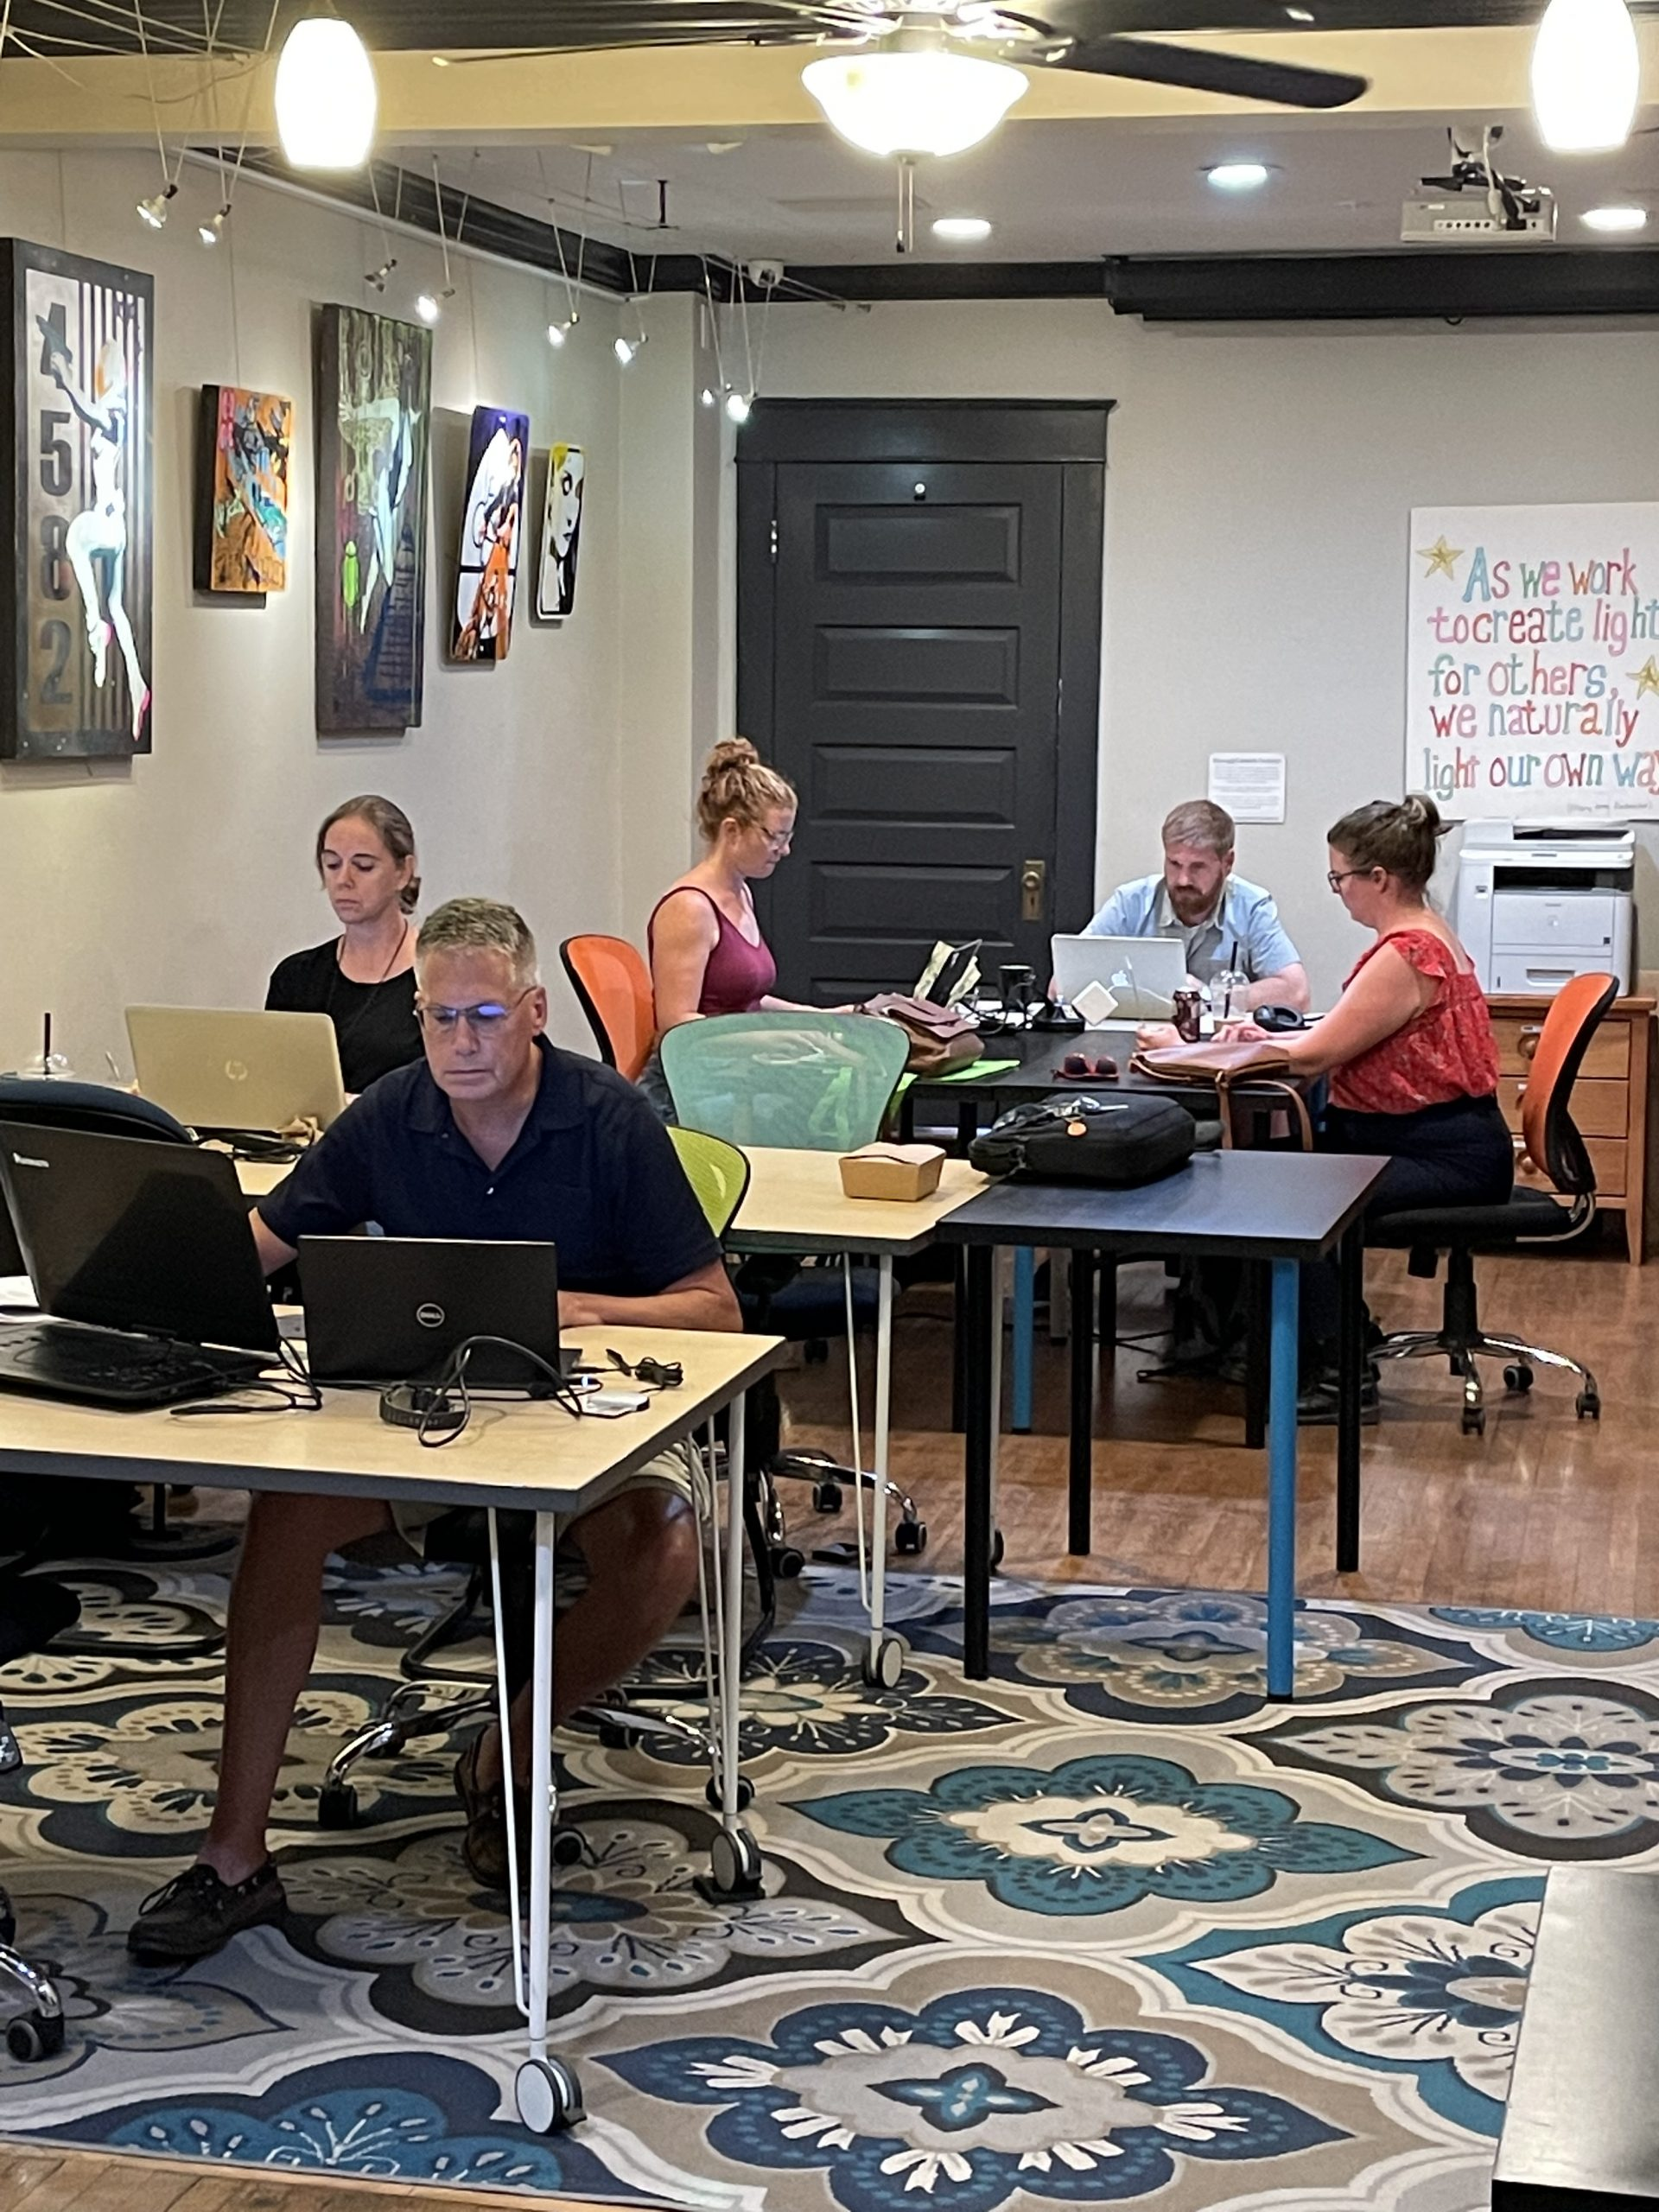 people working at tables on their computers